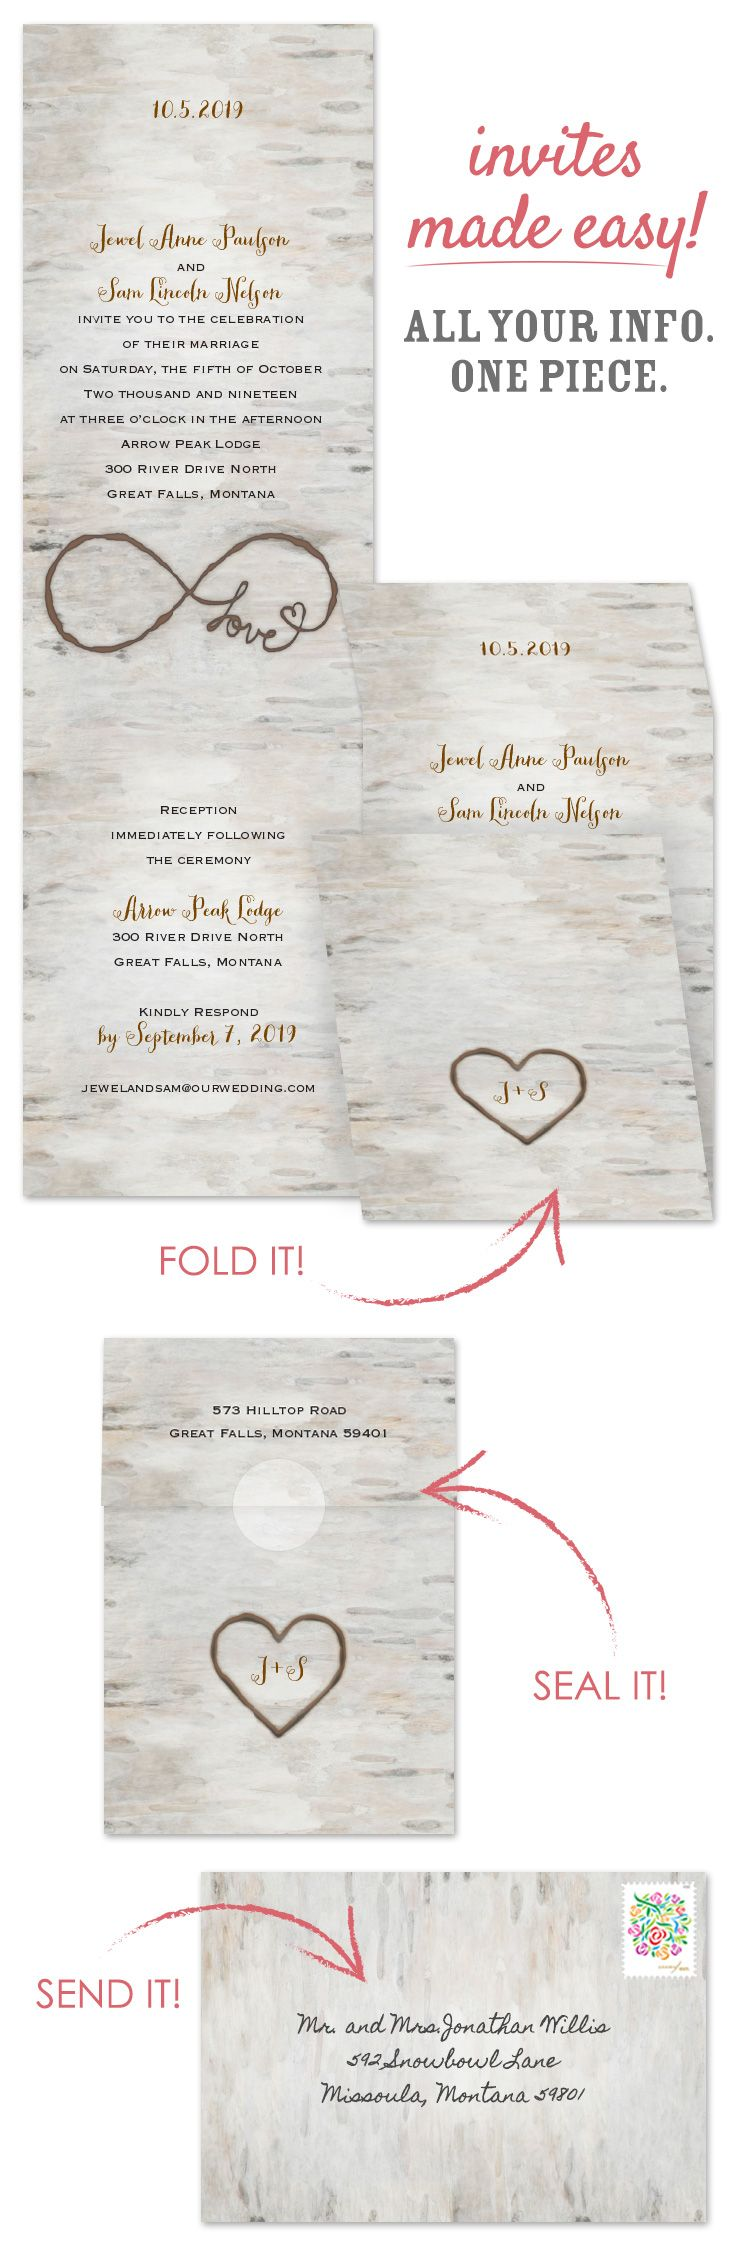 Birch Beauty - Invitation with Online Reply | Pinterest | Woodland ...